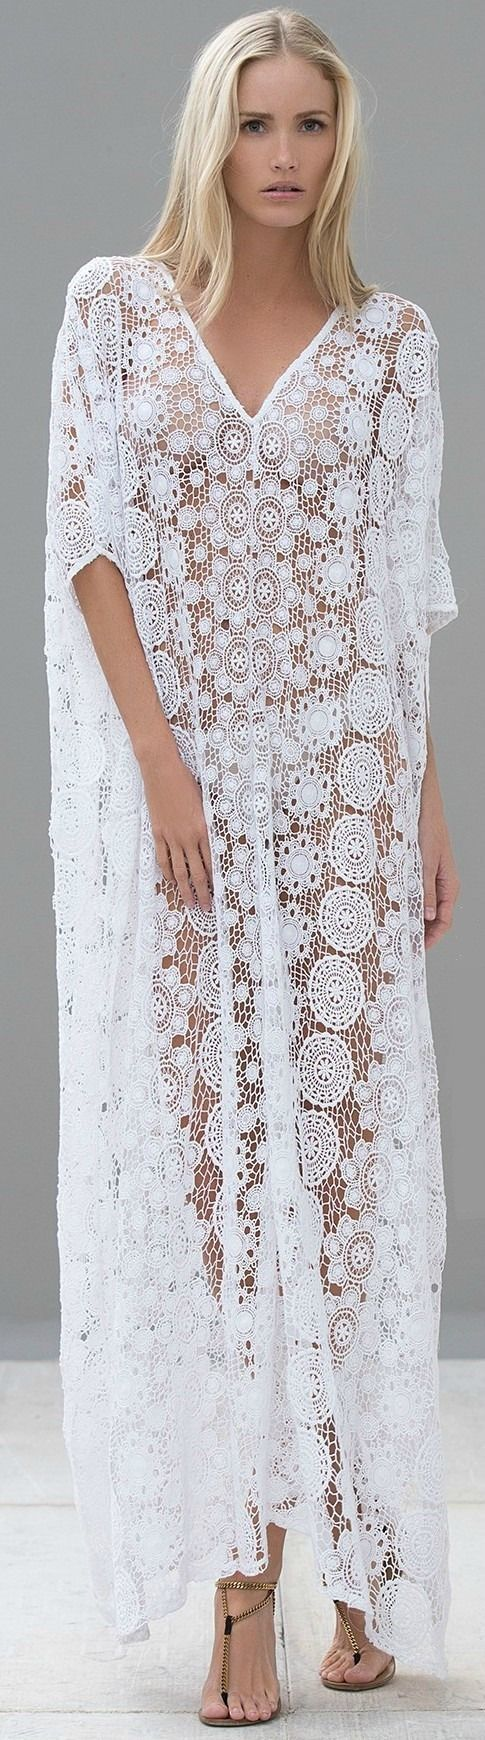 ALEXIS Spring 2014 - The Valerie Dress // Vintage bohemian 70's style crochet lace caftan V neck wedding dress design idea